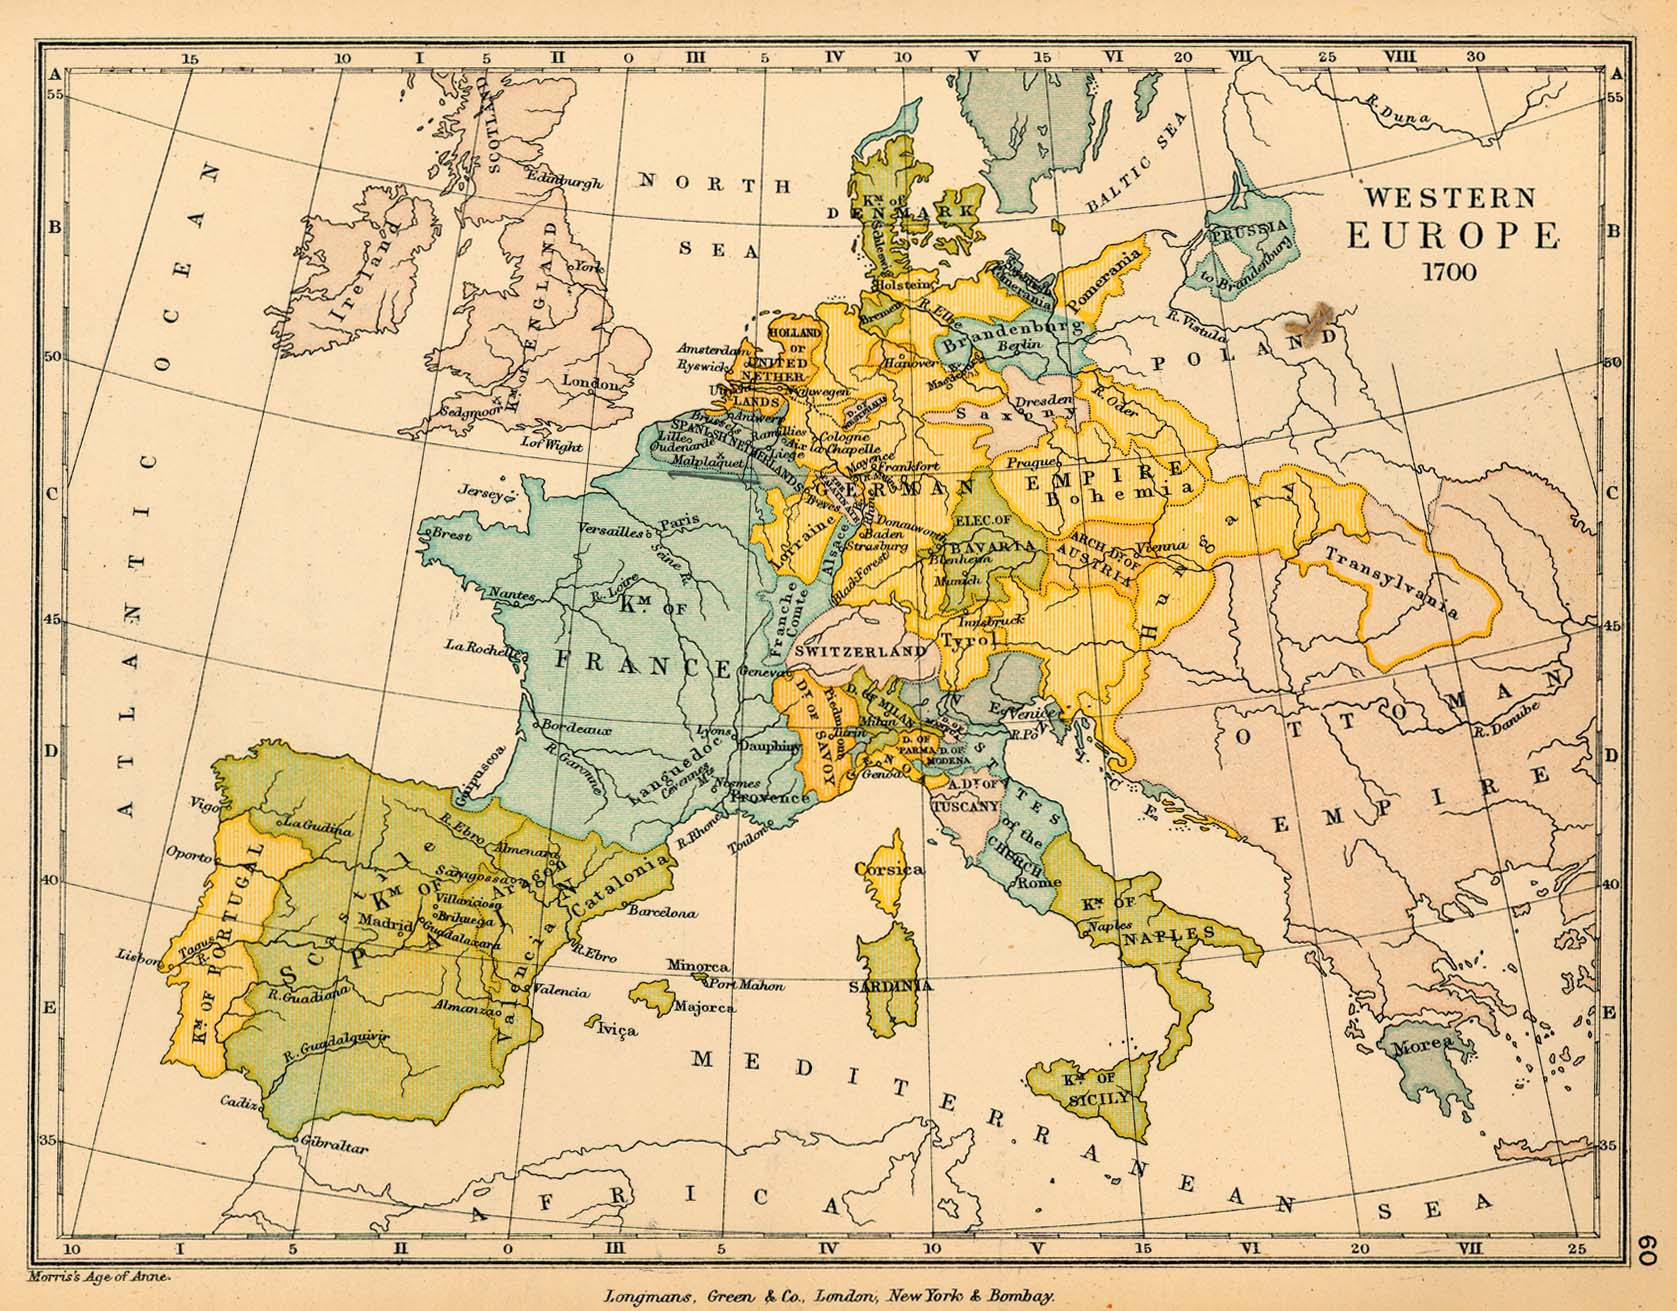 Public schools historical atlas by c colbeck perry castaeda map western europe in 1700 384k map 60 gumiabroncs Image collections